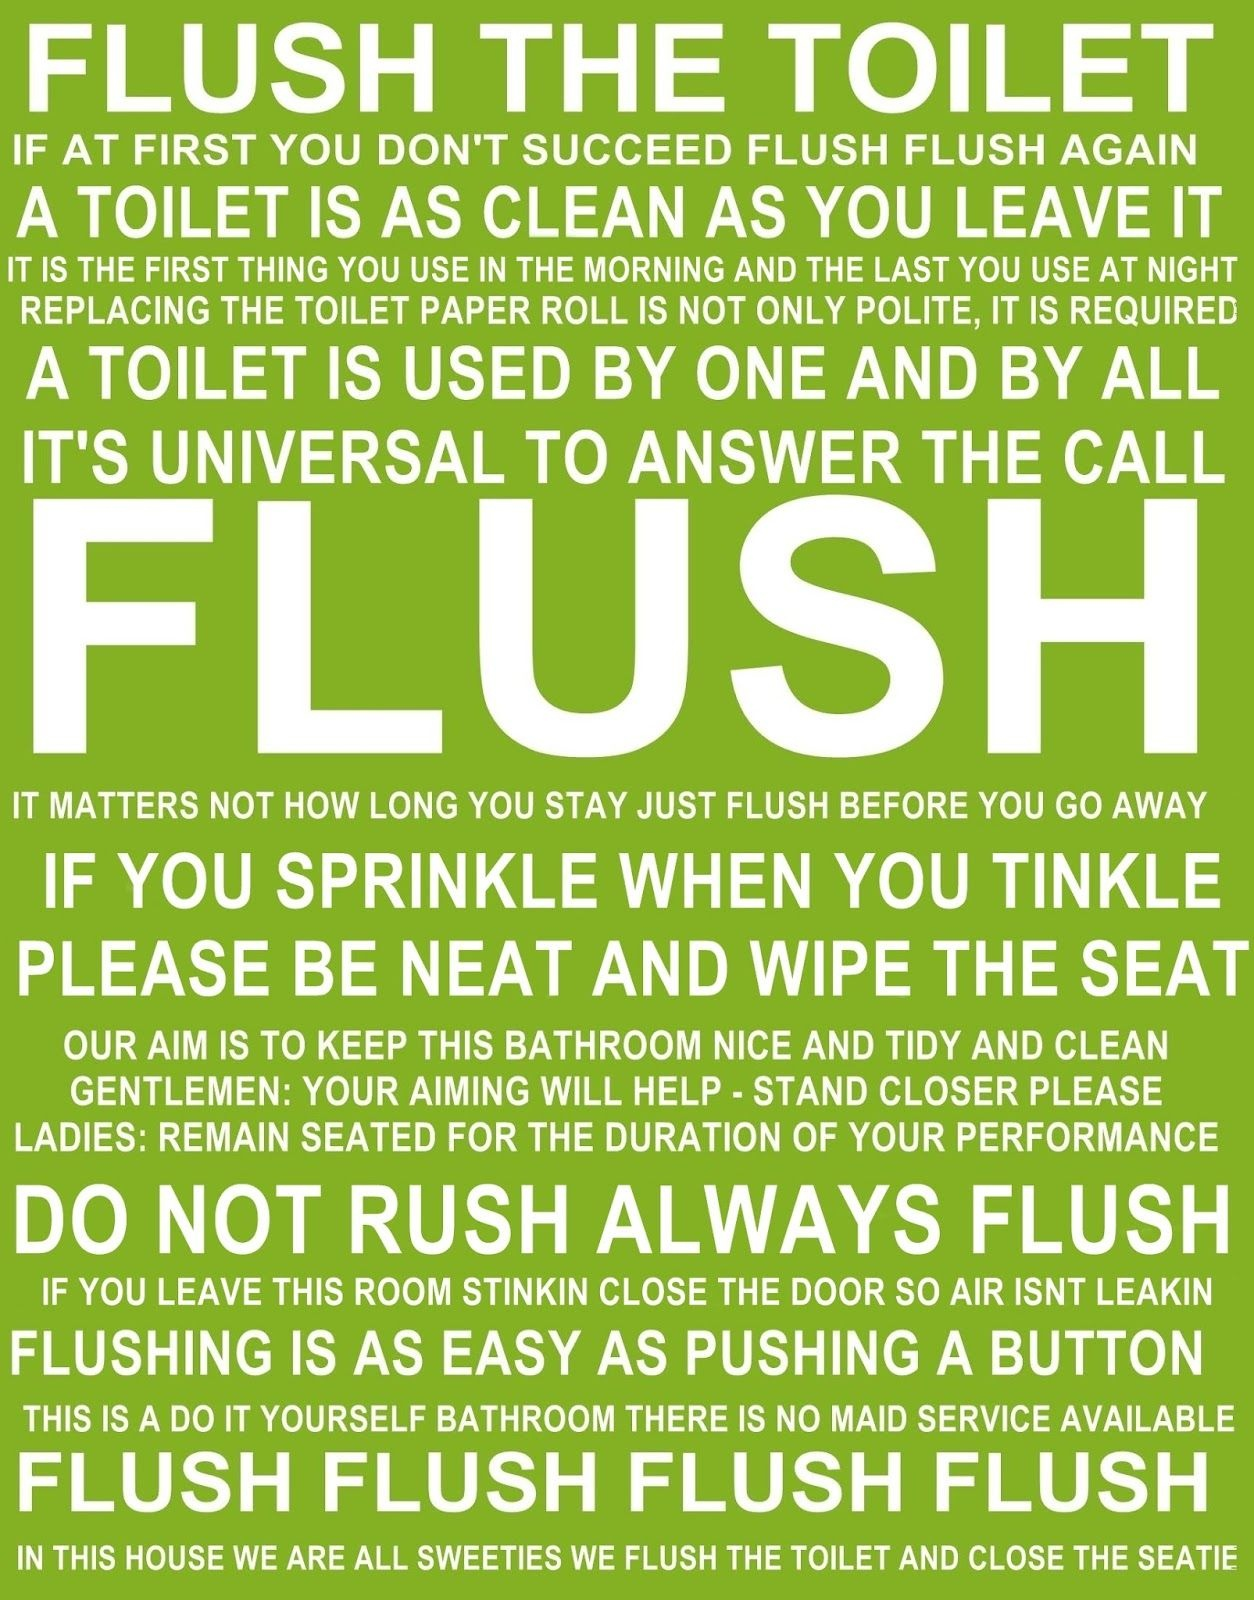 Flush The Toilet Quotes And Sayings Free Printable | Bathroom - Free Printable Do Not Flush Signs